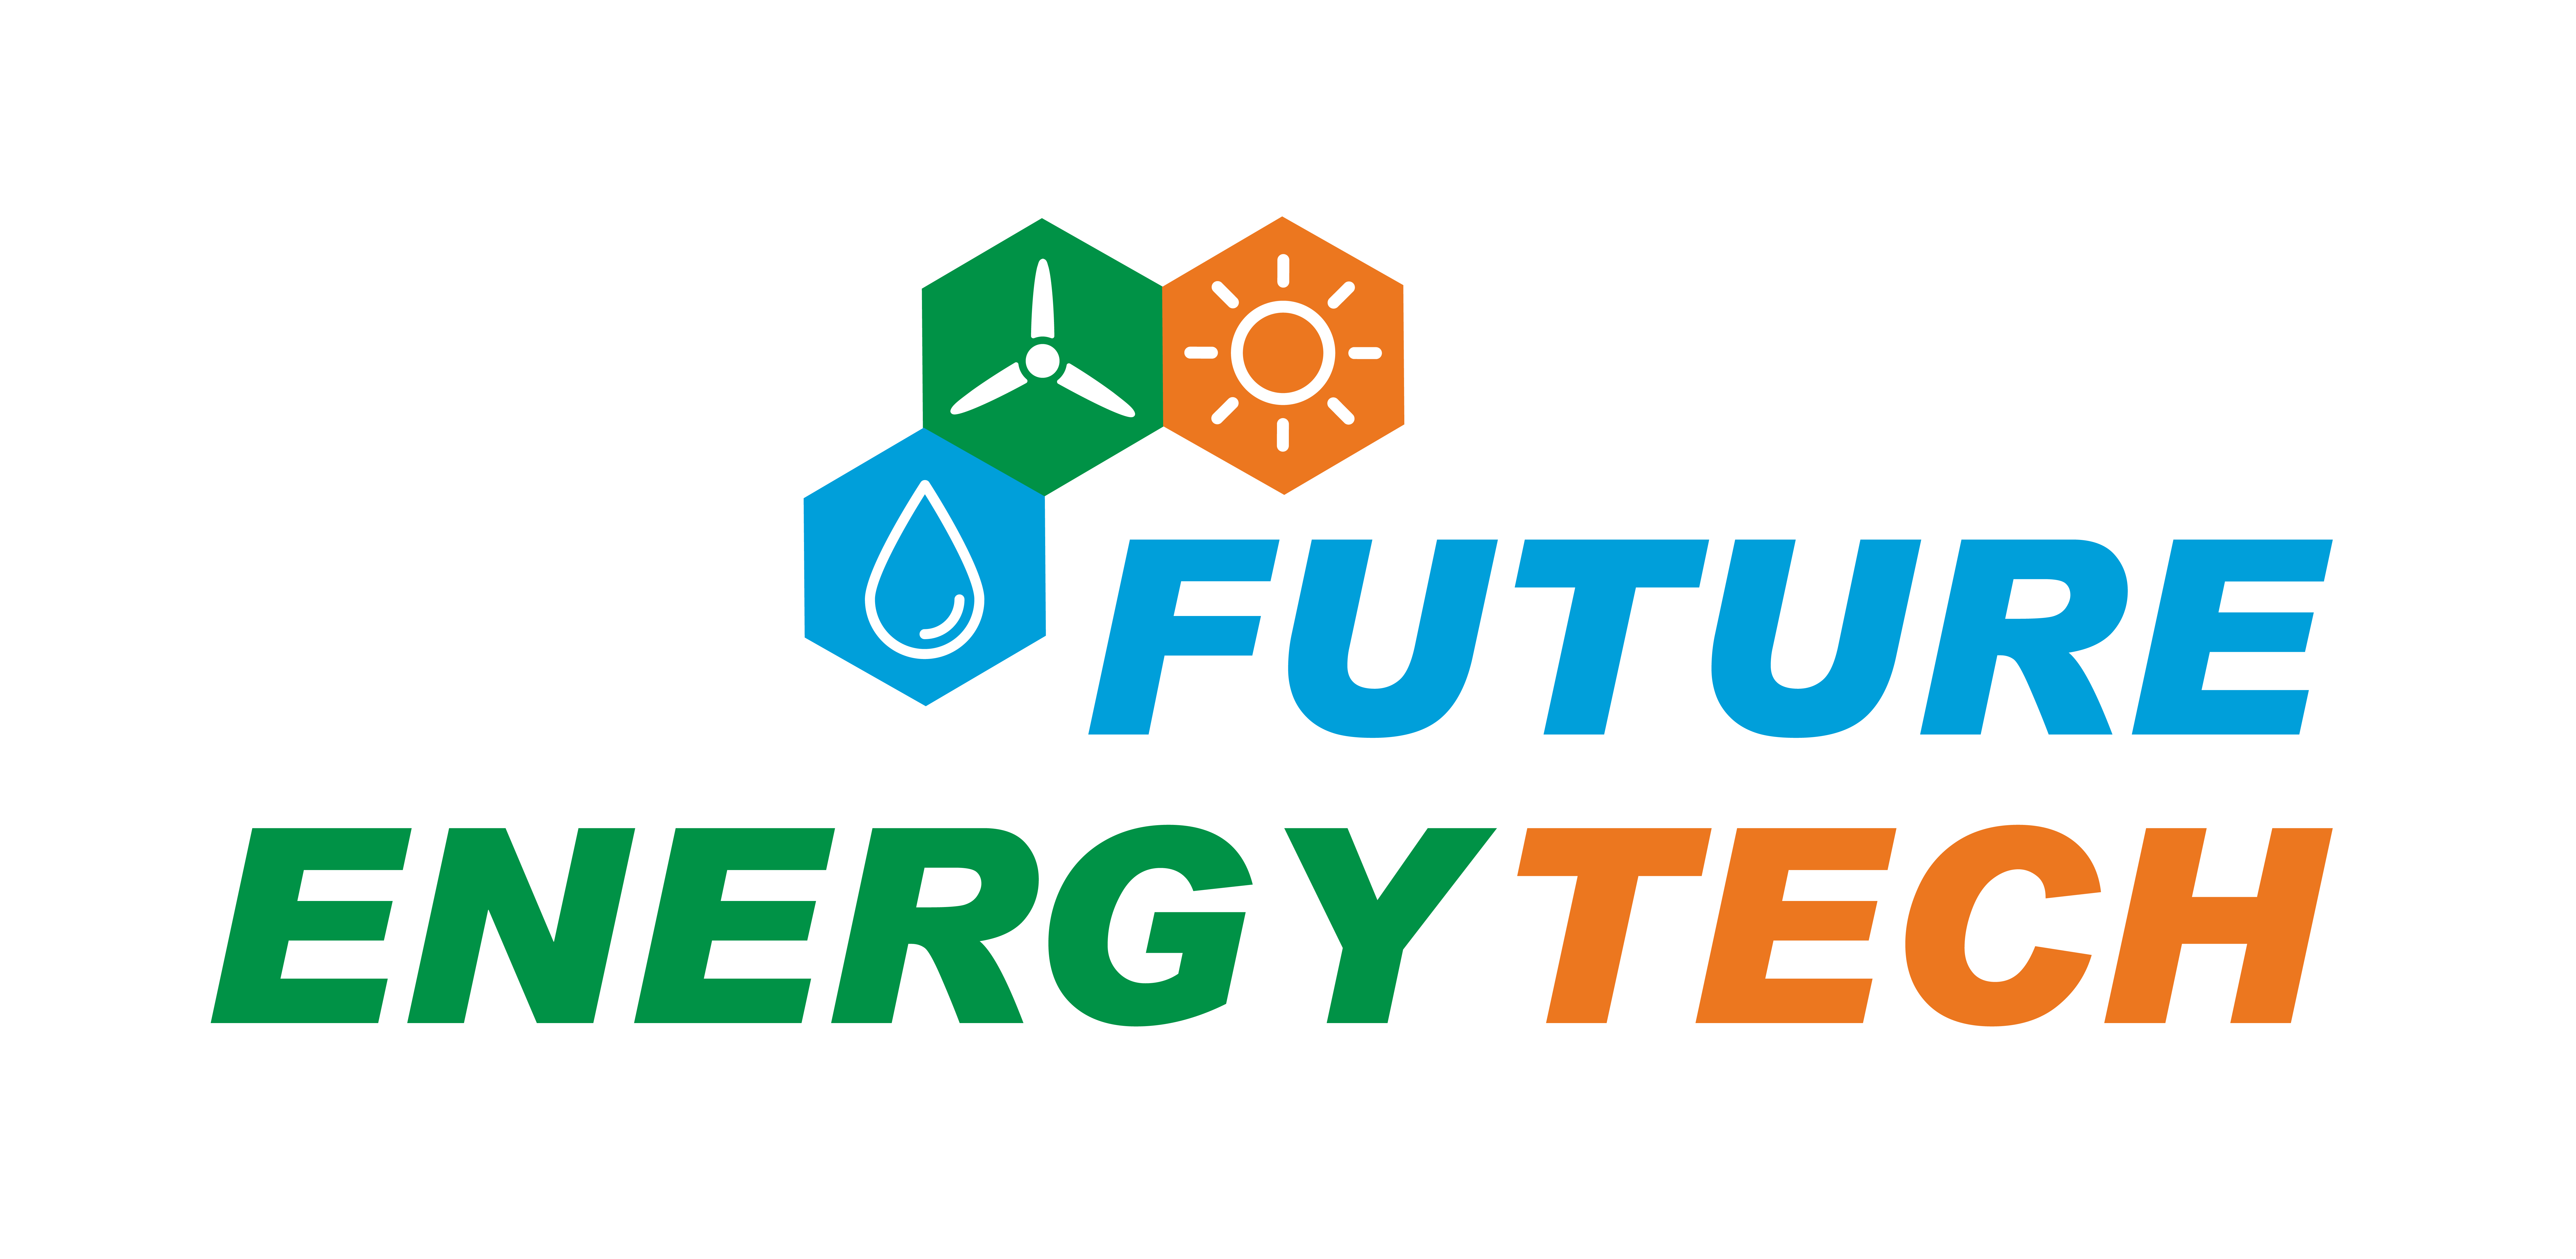 Future Energy Forum by Event Linker - Your Energy Event Experts!